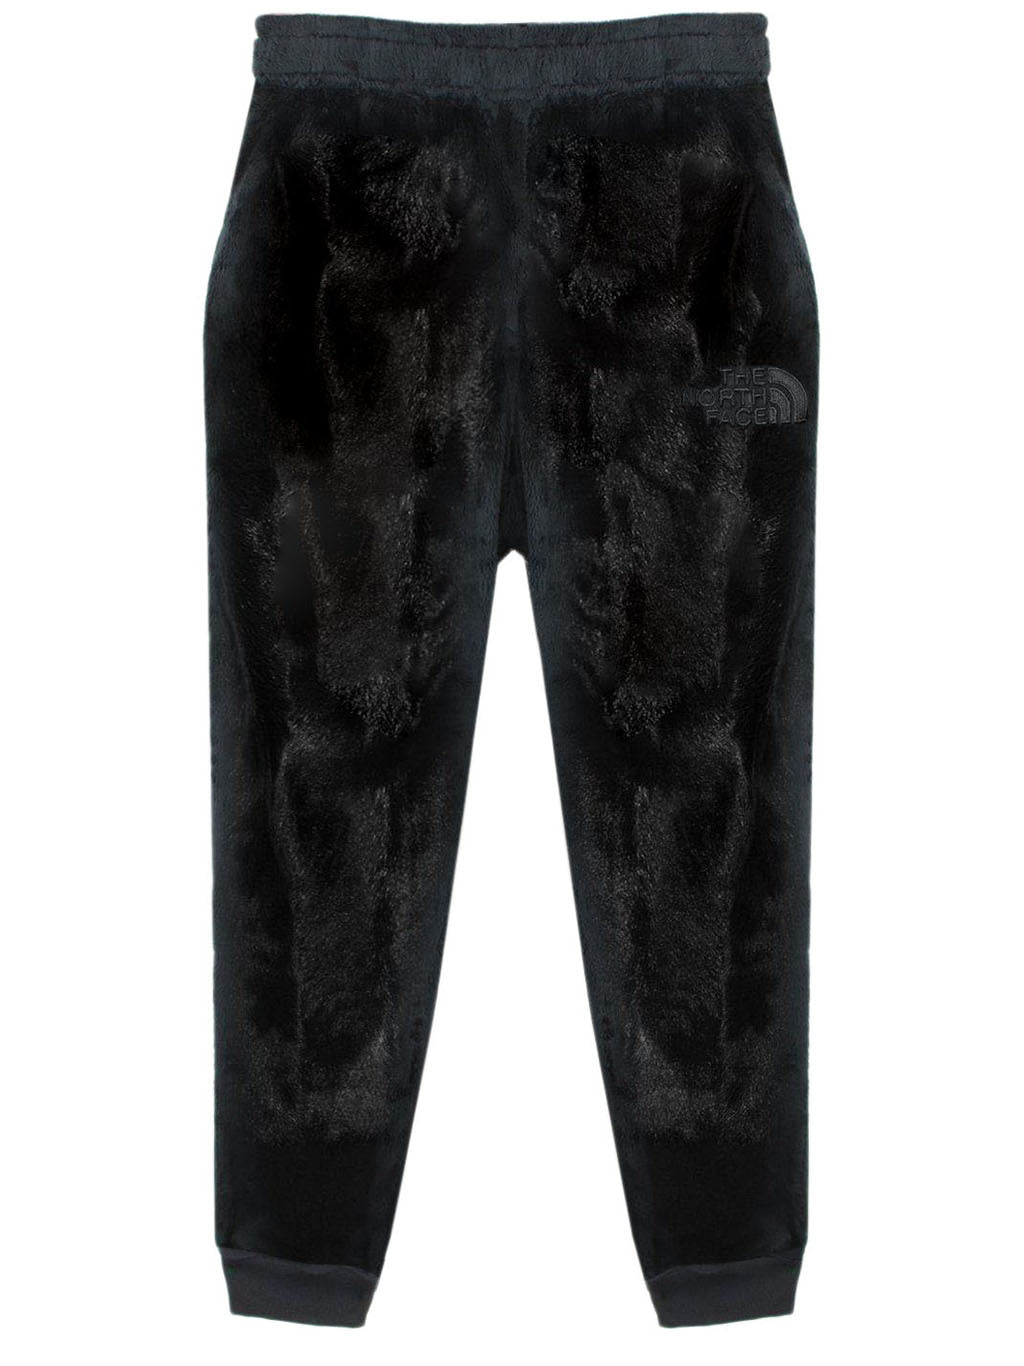 Black KK Fleece Knit Pants